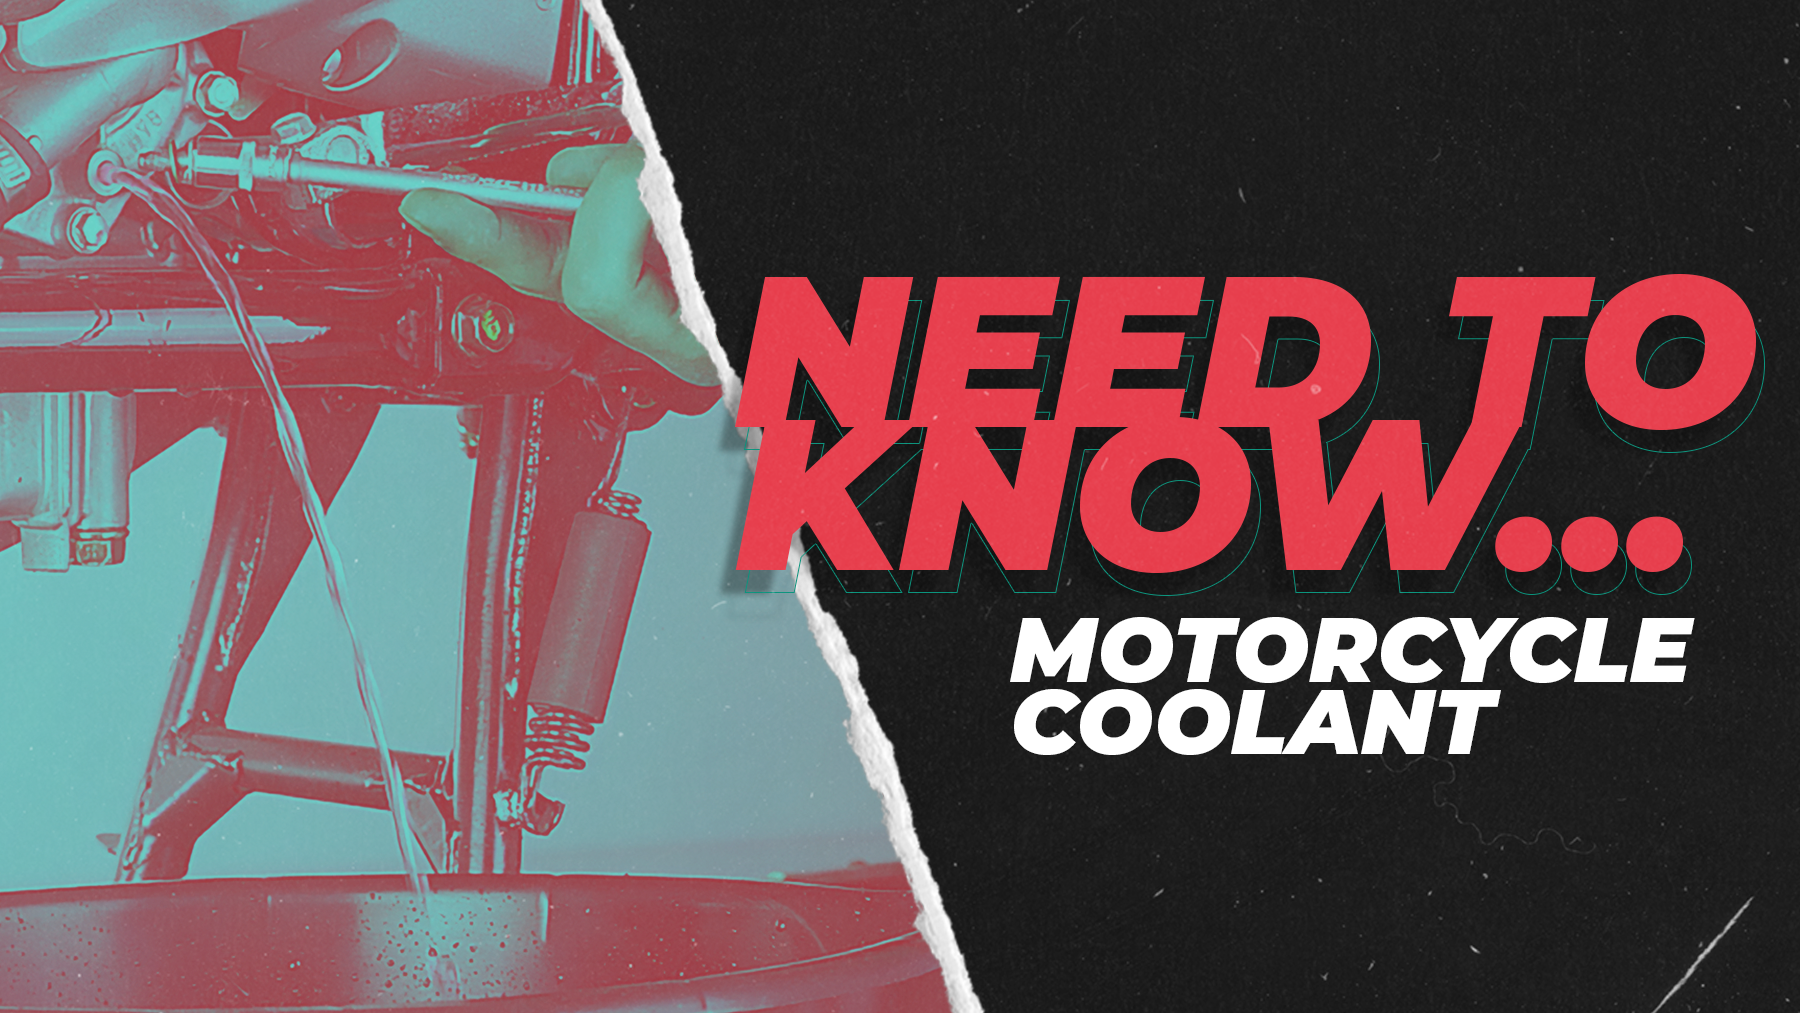 Motorcycle Coolant: The Need-To-Knows